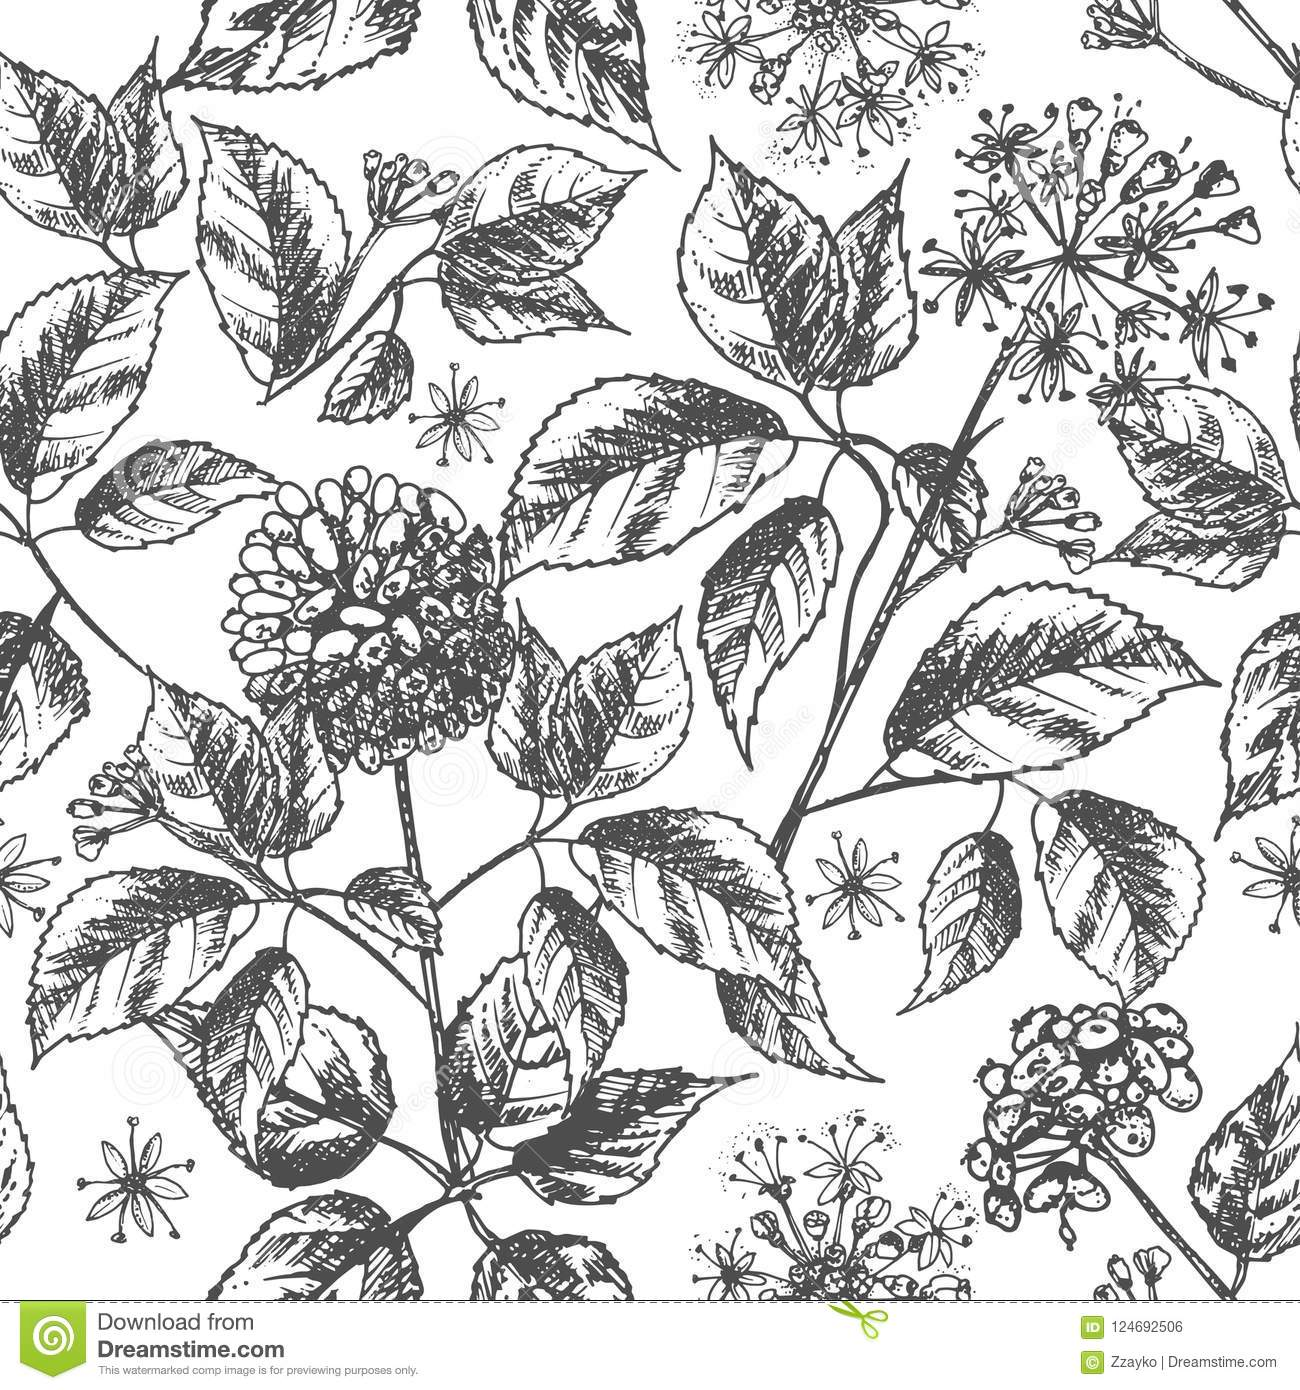 Realistic Botanical Ink Sketch Seamless Pattern With Ginseng Root